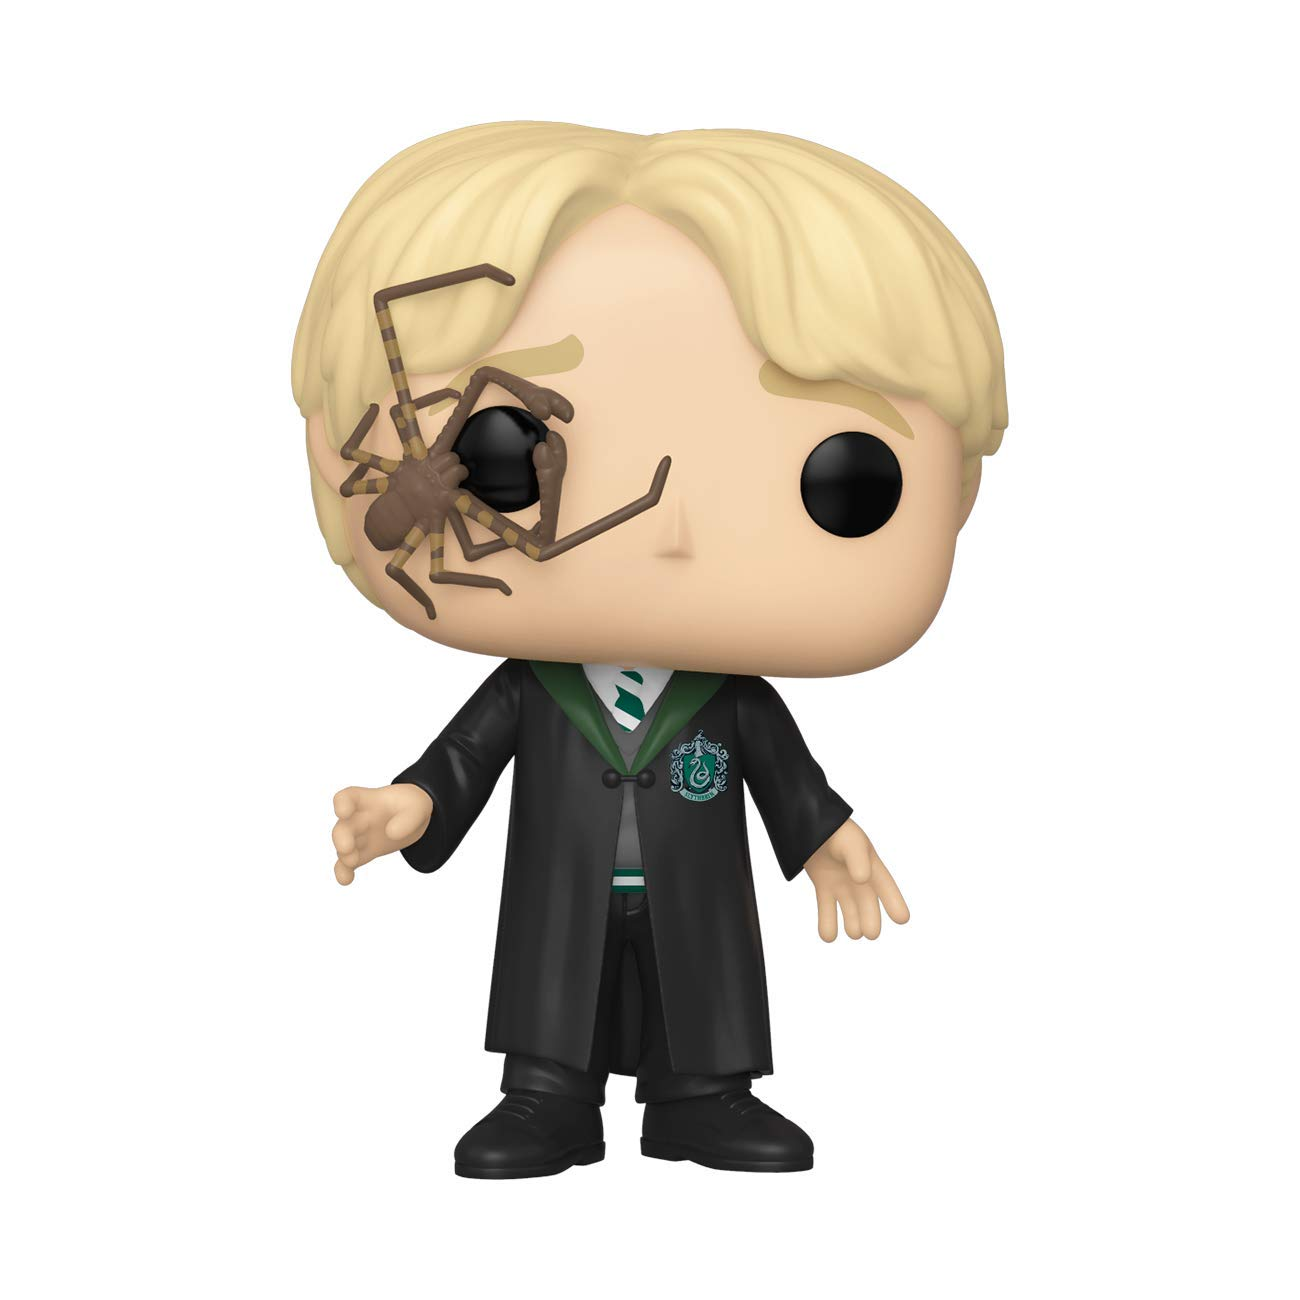 Funko Pop! Harry Potter: Harry Potter - Malfoy with Whip Spider